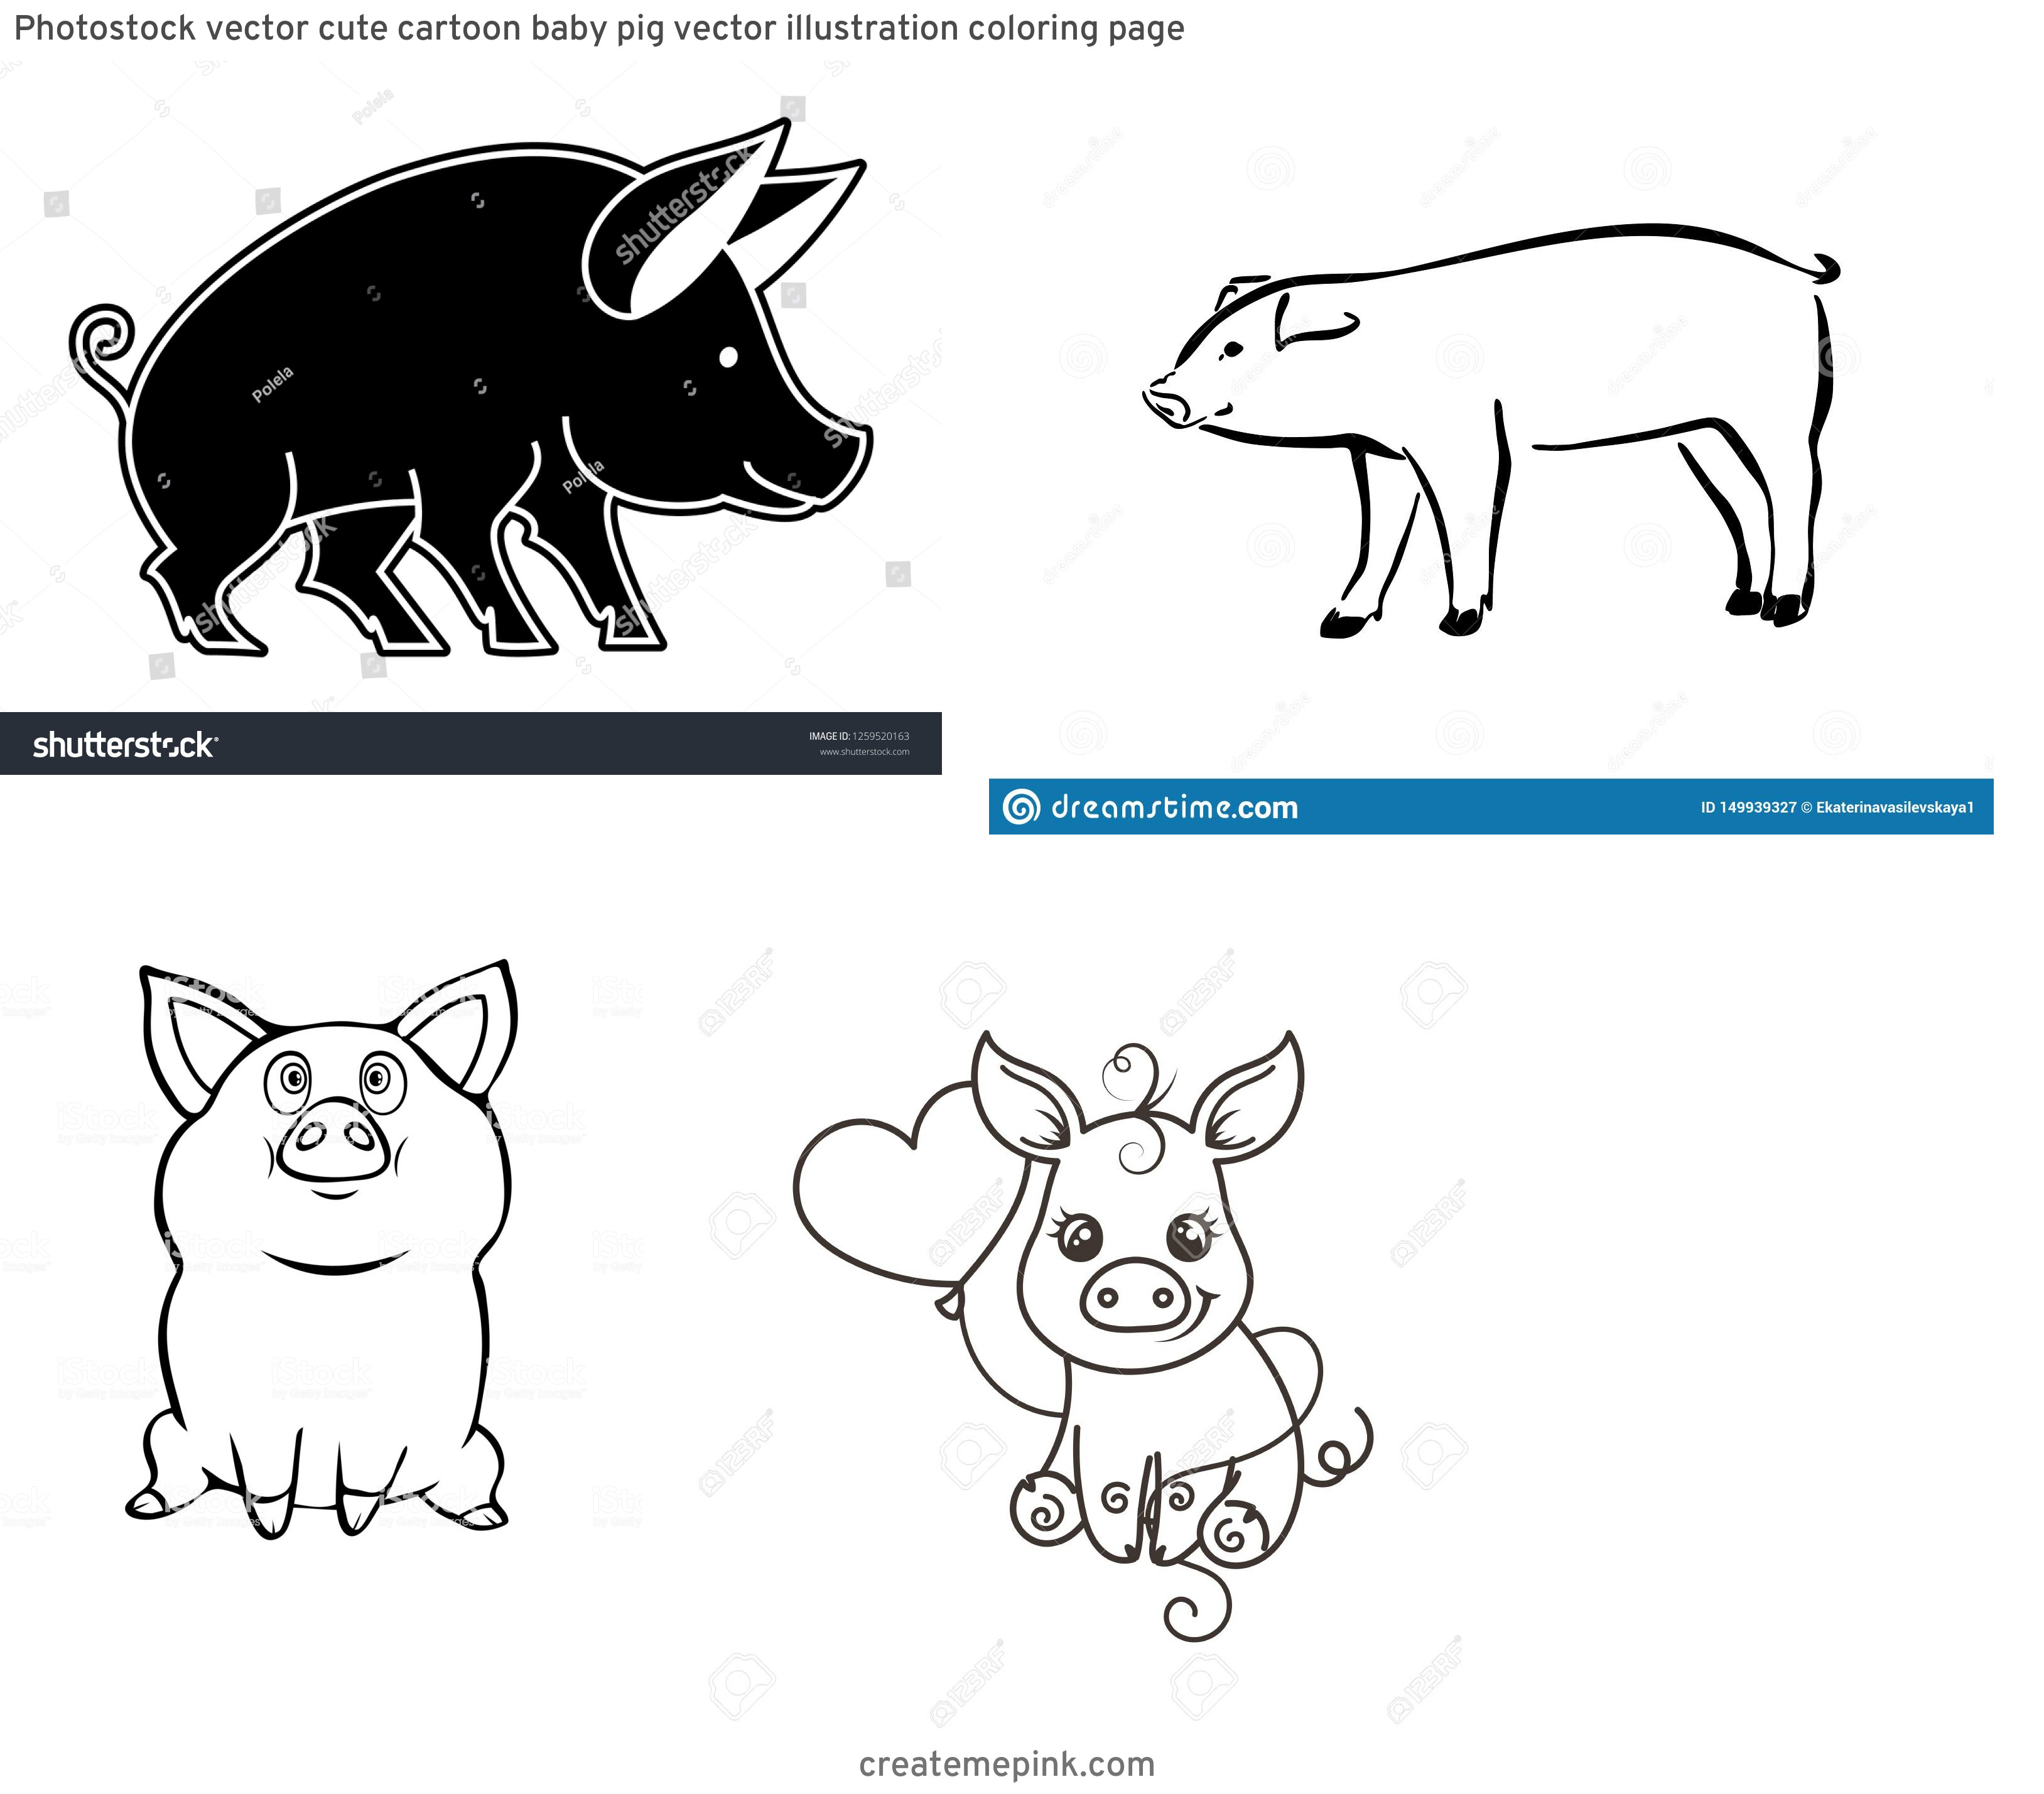 Cute Pig Vector Black And White: Photostock Vector Cute Cartoon Baby Pig Vector Illustration Coloring Page